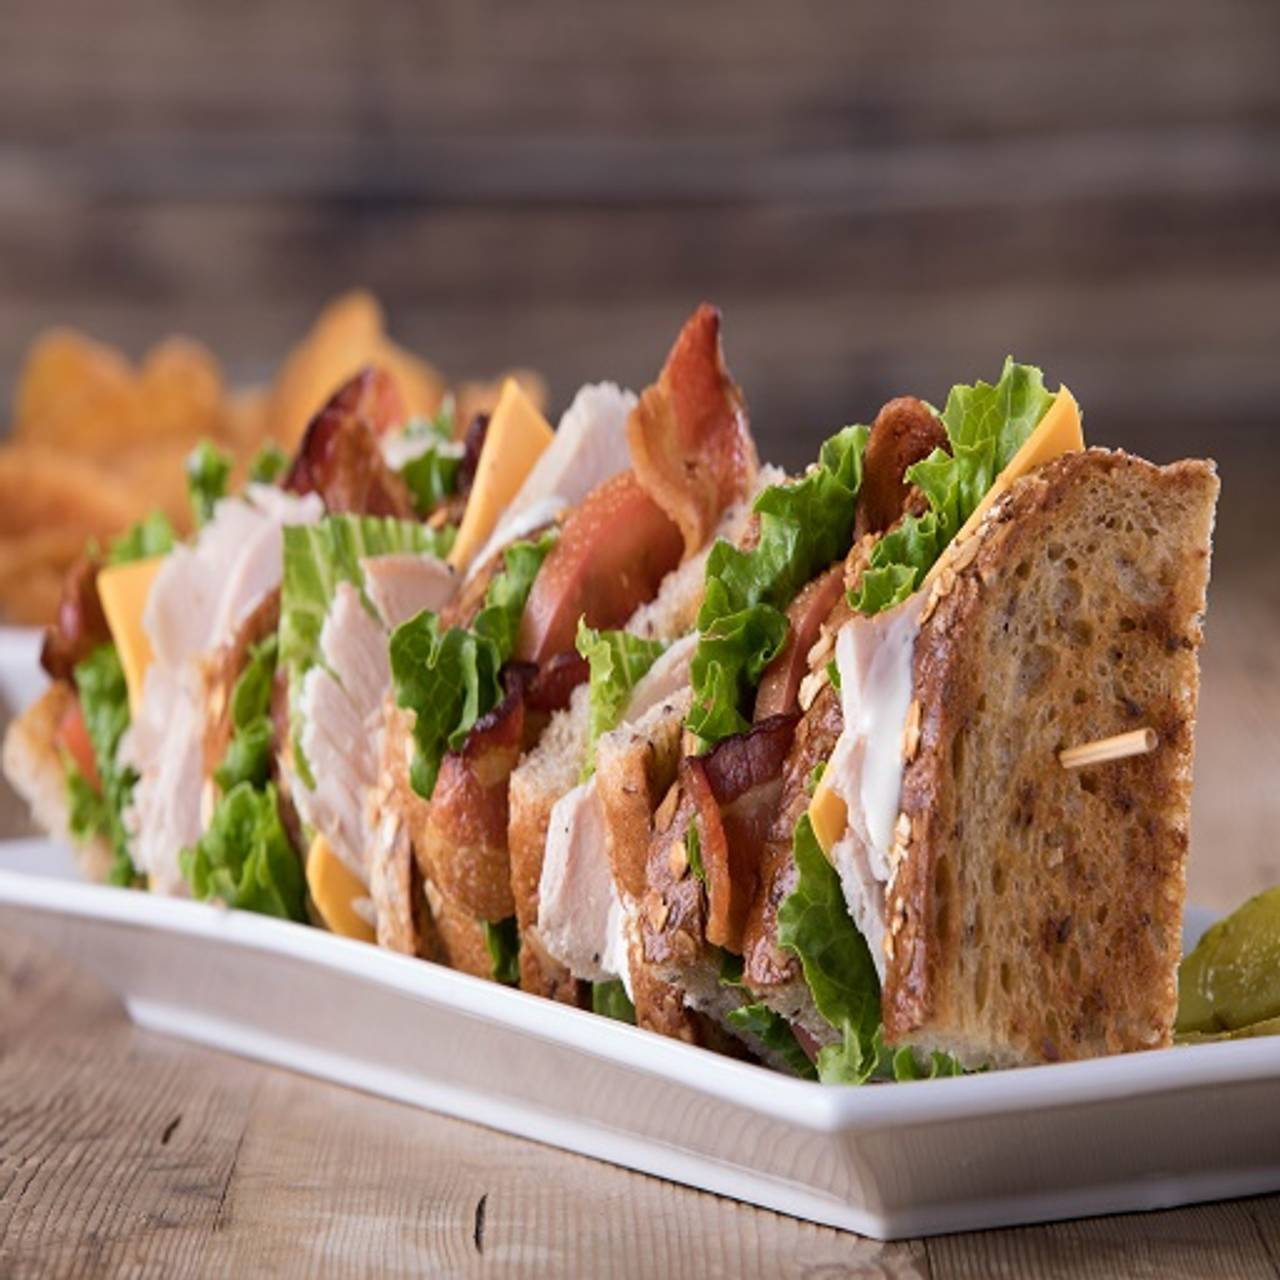 Kings Clic Turkey Club Family Restaurant North Versailles Pa